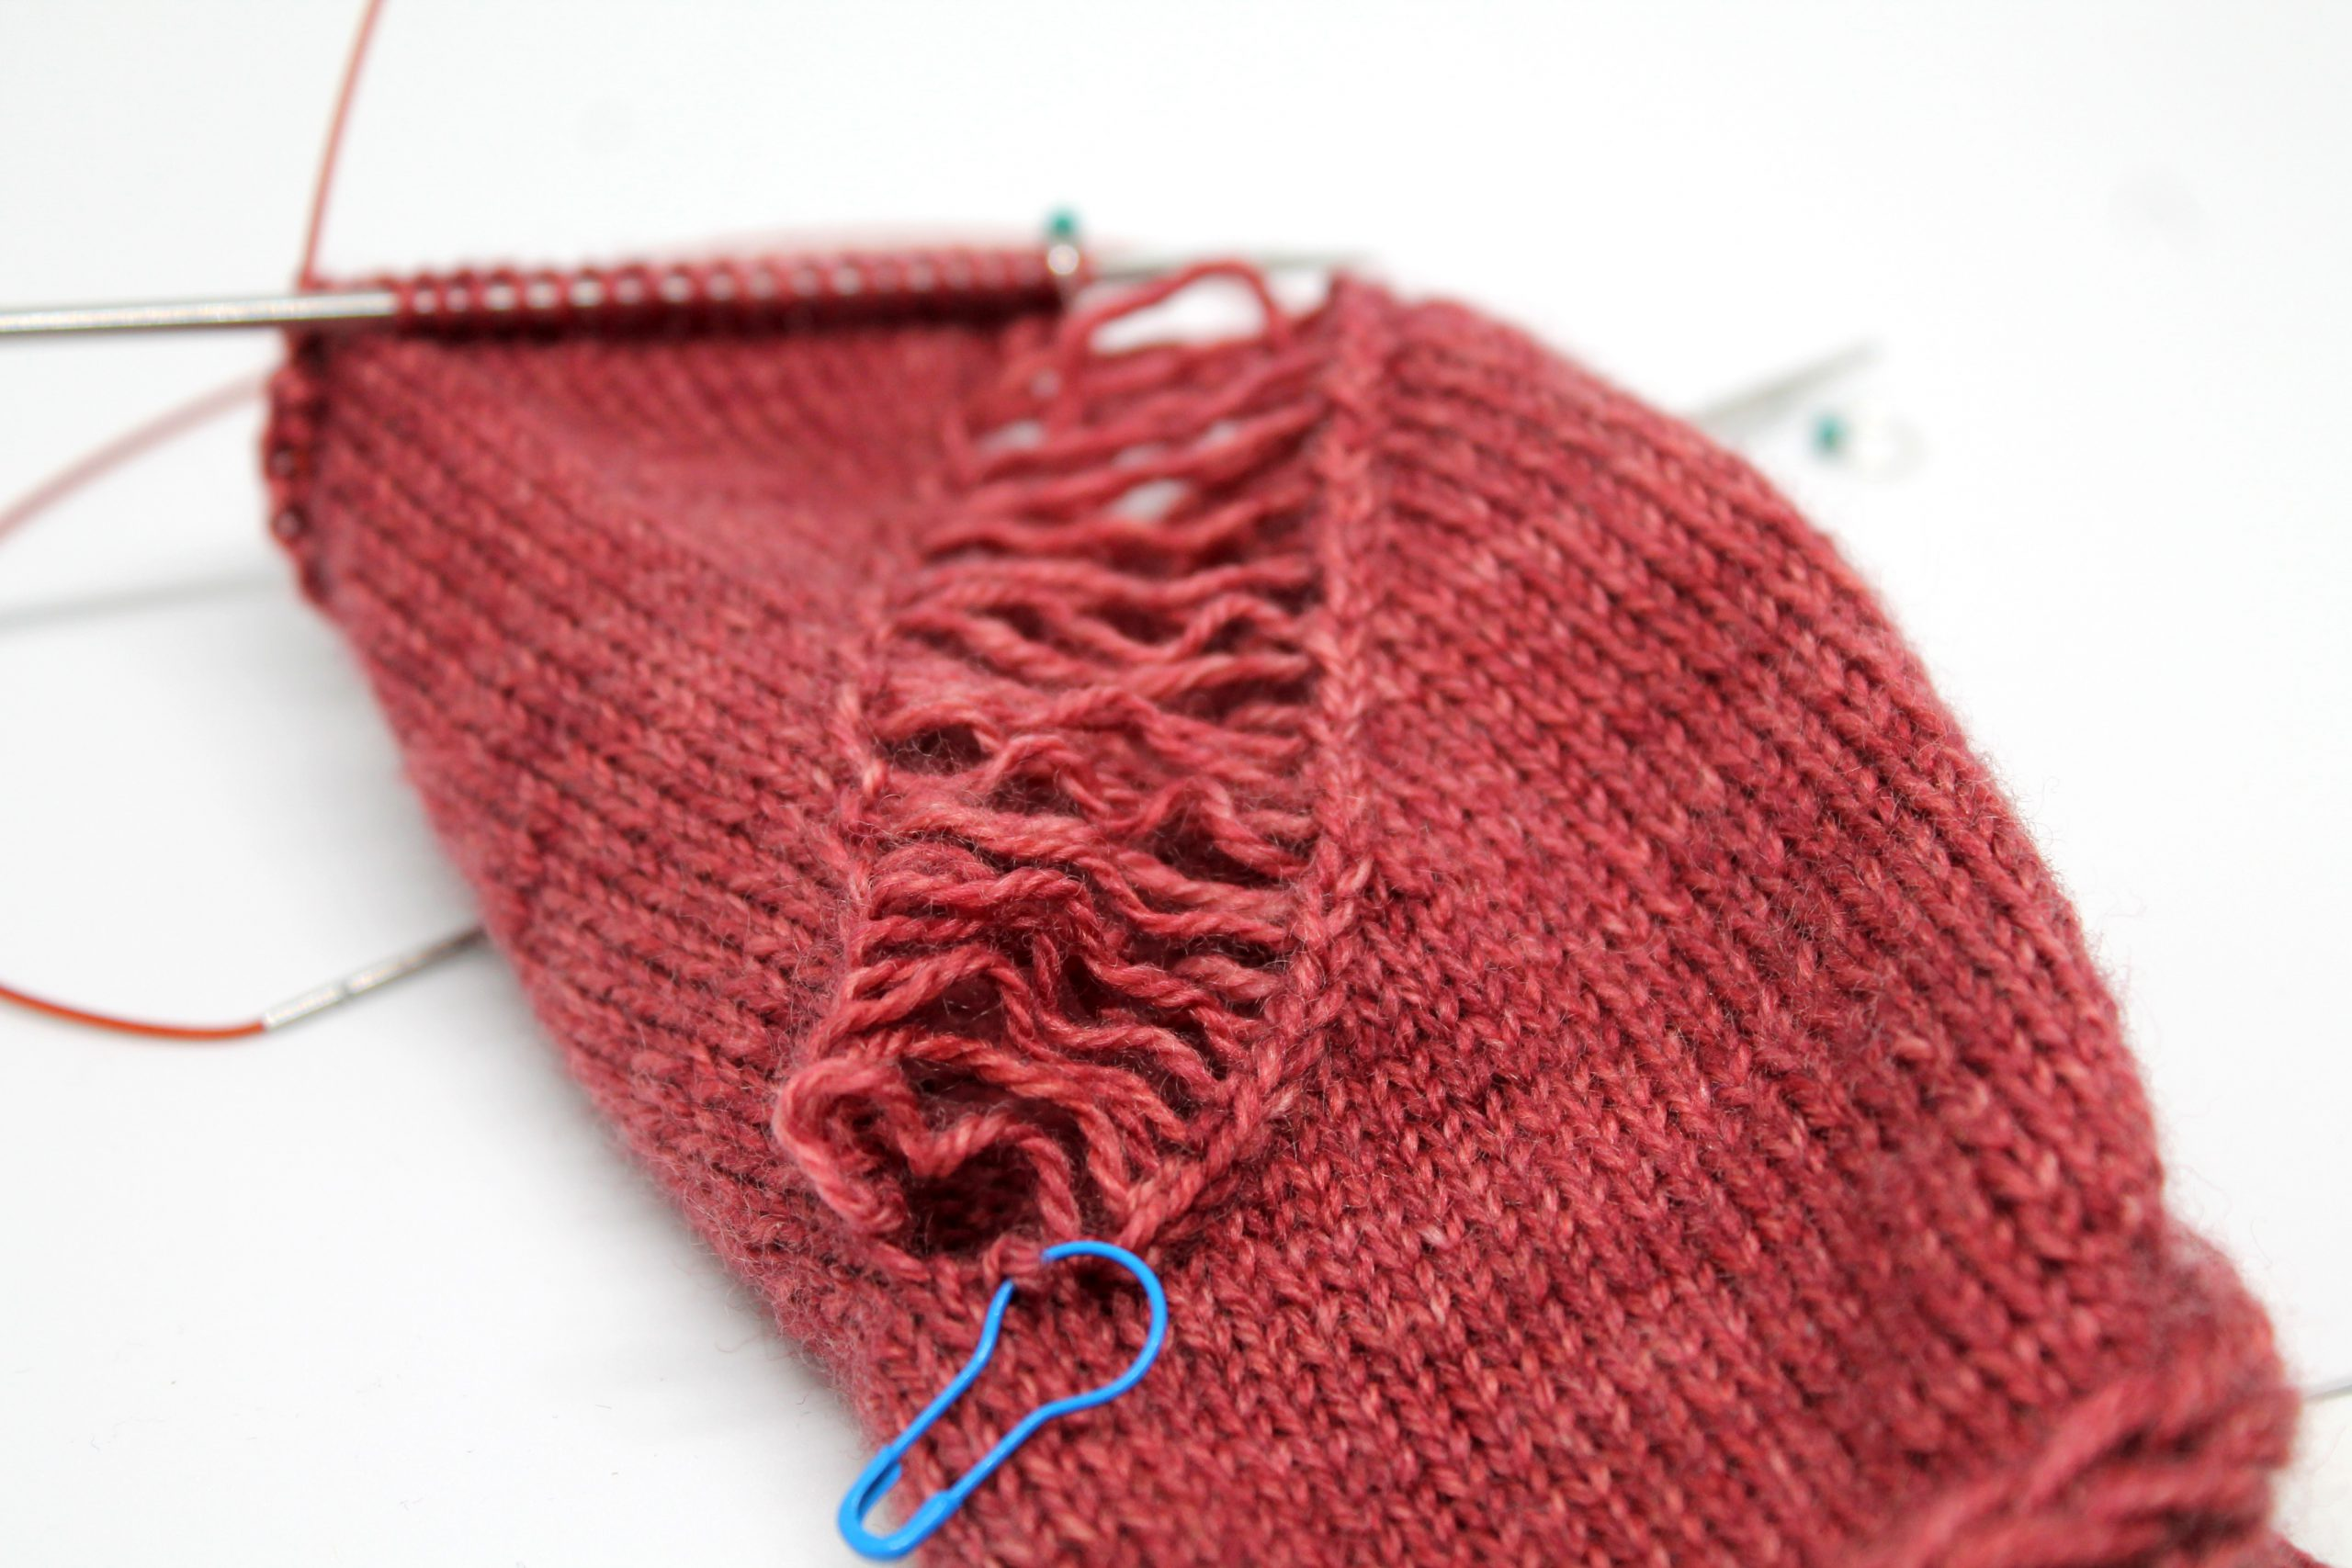 A piece of knitting with a wide laddered gap where stitches have been dropped. At the bottom of the photo is a stitch with a bulb stitch marker through it.